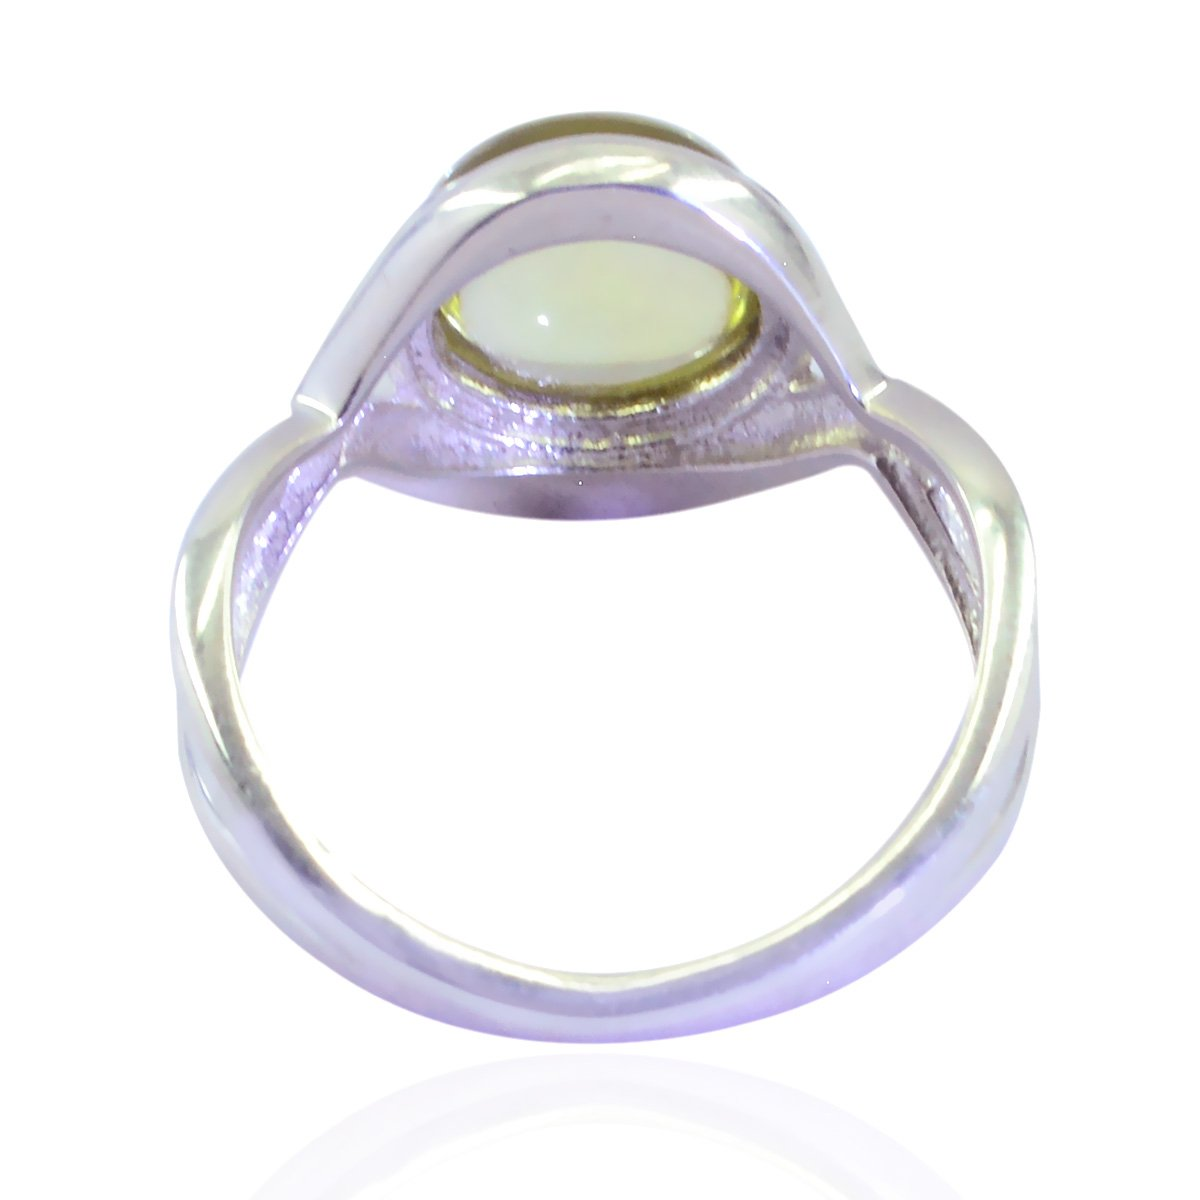 Lucky Gemstone Round cabochon Prehnite Ring fine Jewellery Greatest Item Gift for Mothers Day Personalized Jewelry 925 Sterling Silver Green Prehnite Lucky Gemstone Ring